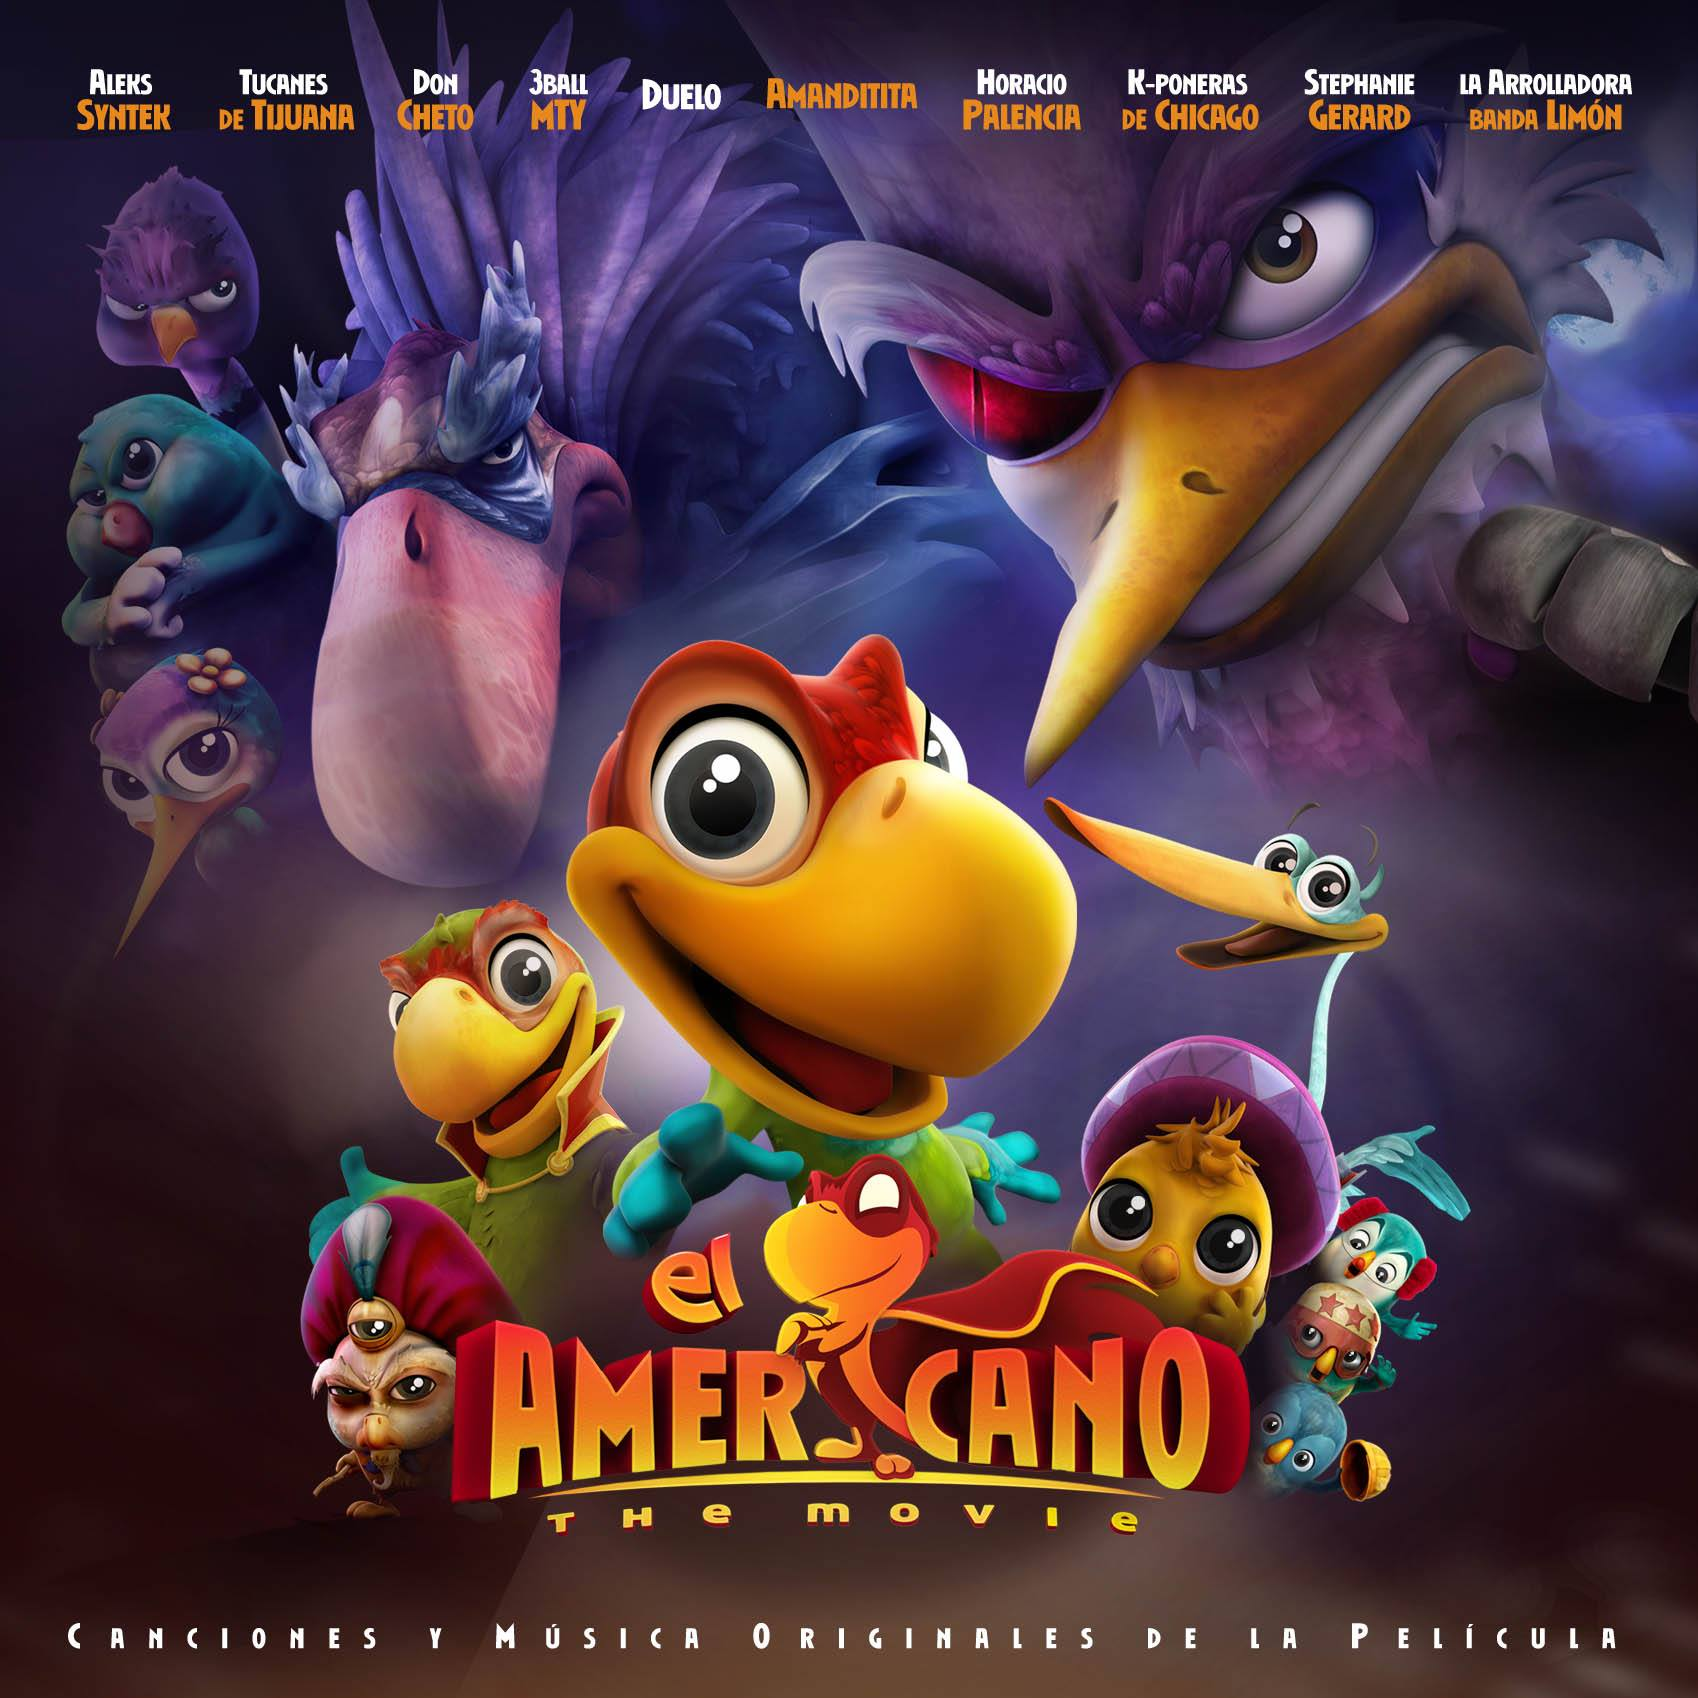 Movie Soundtrack Orchestra Song